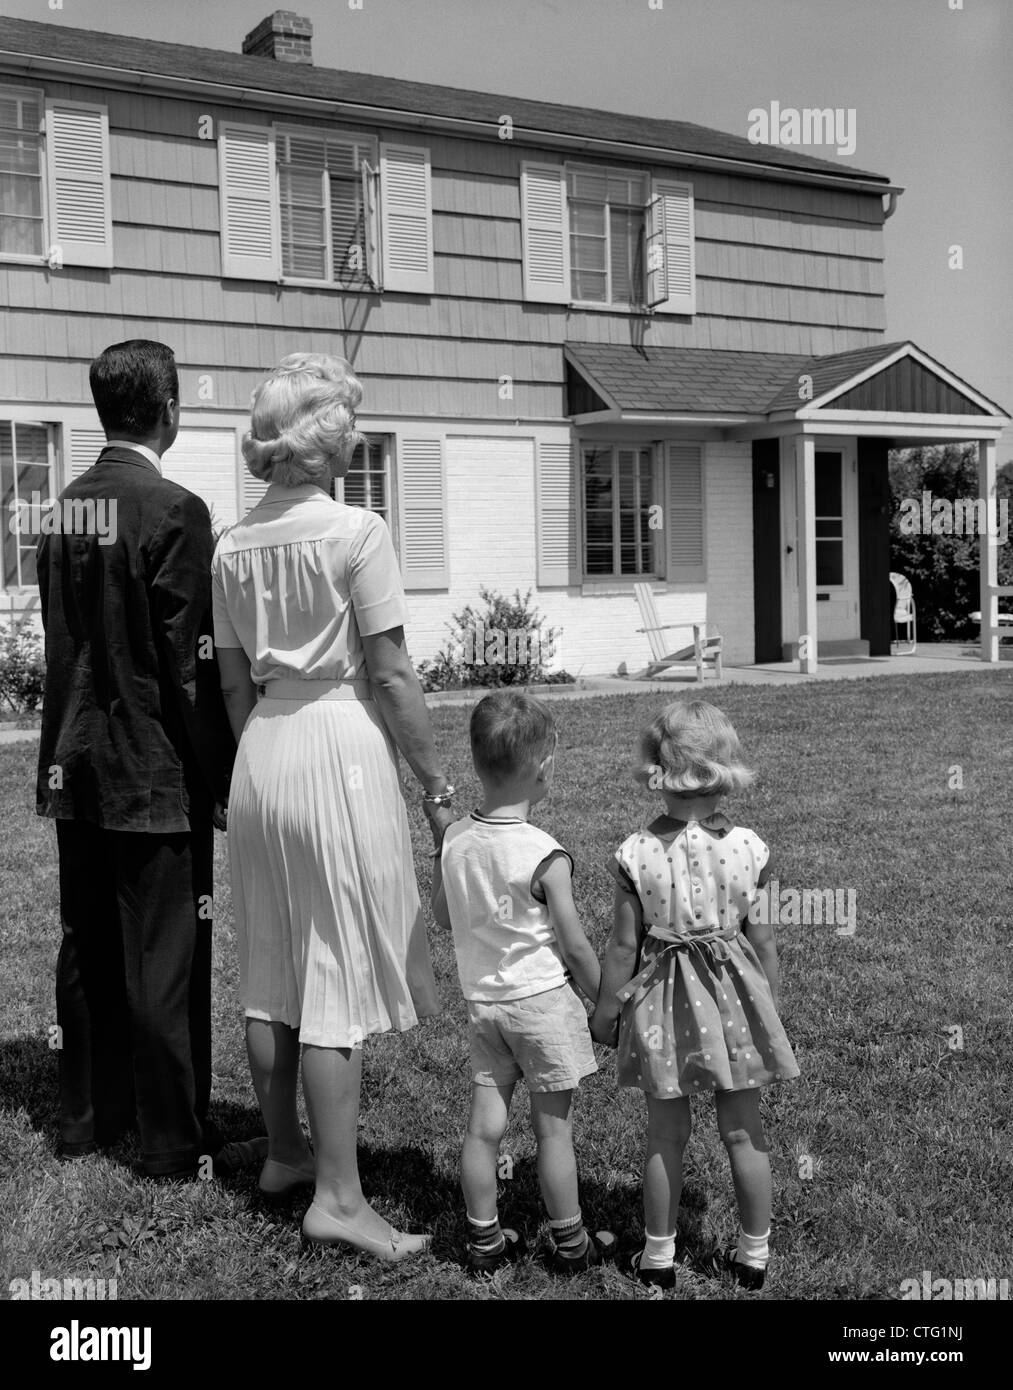 1950s House 1950s 1960s family father mother son daughter standing together